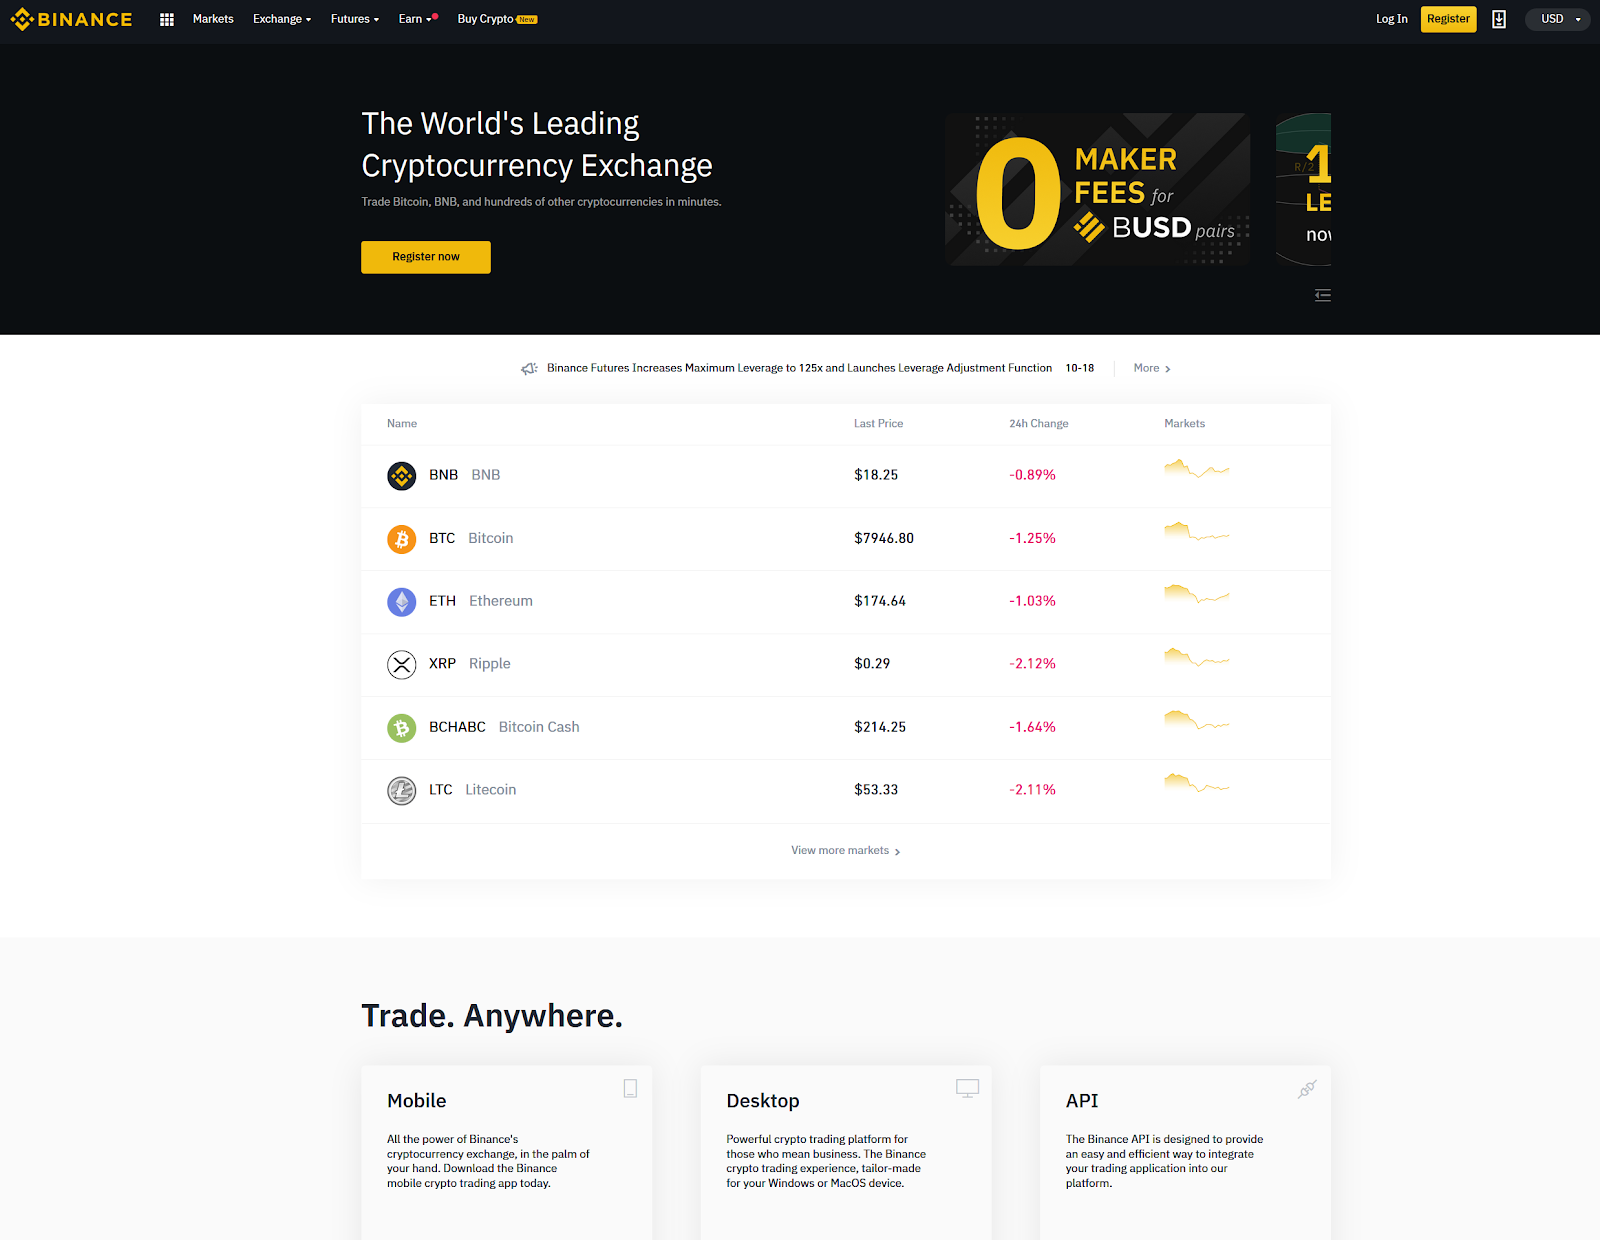 Binance Home Page Showing Prices. 24 Hour Major Cryptocurrencies. From Binance.